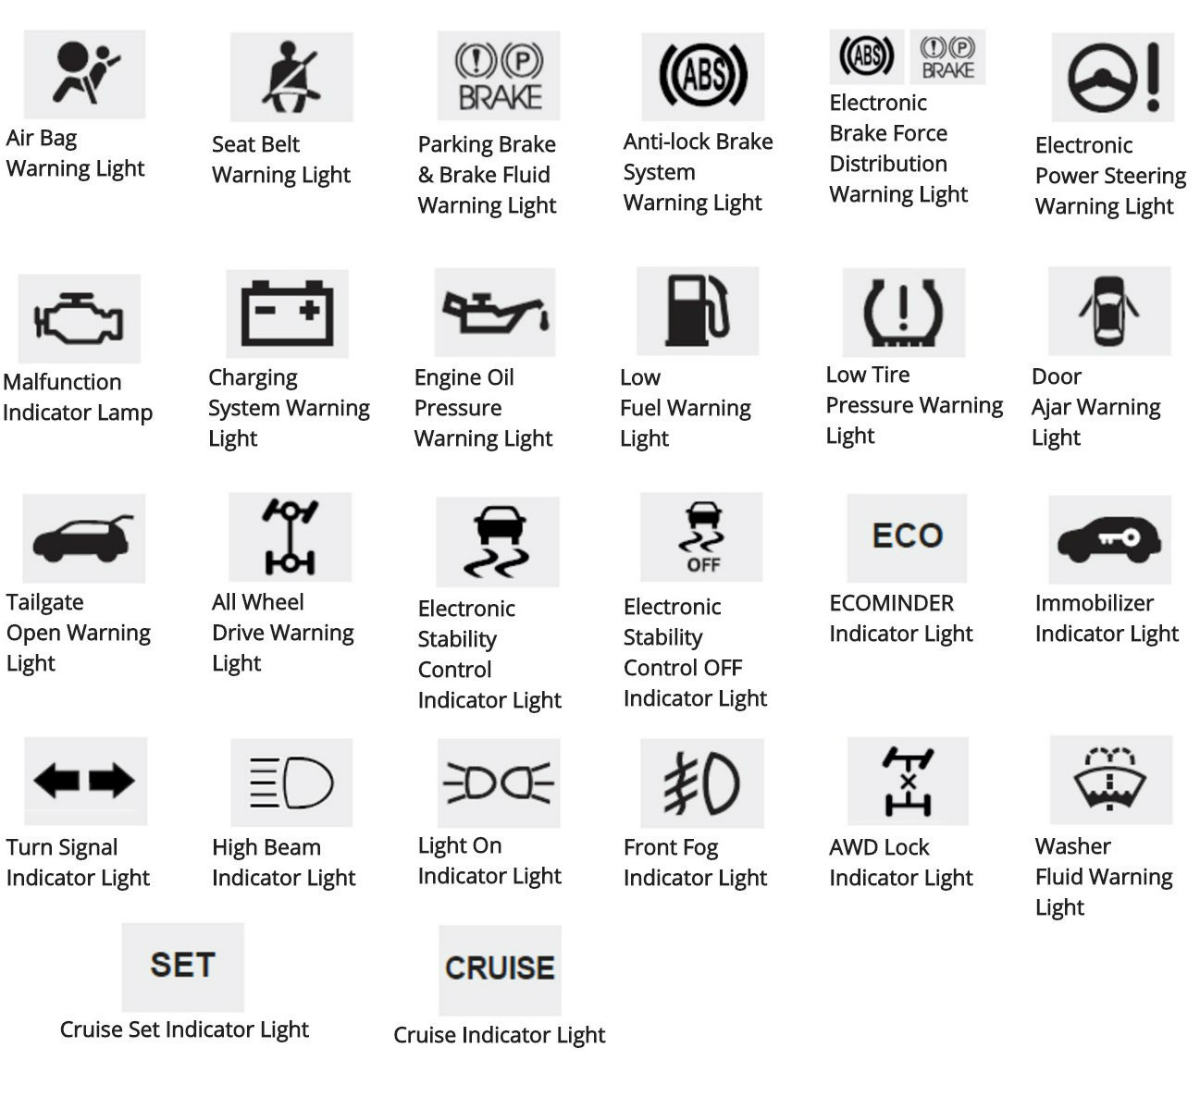 Worksheet. Kia Dashboard Warning Light Guide